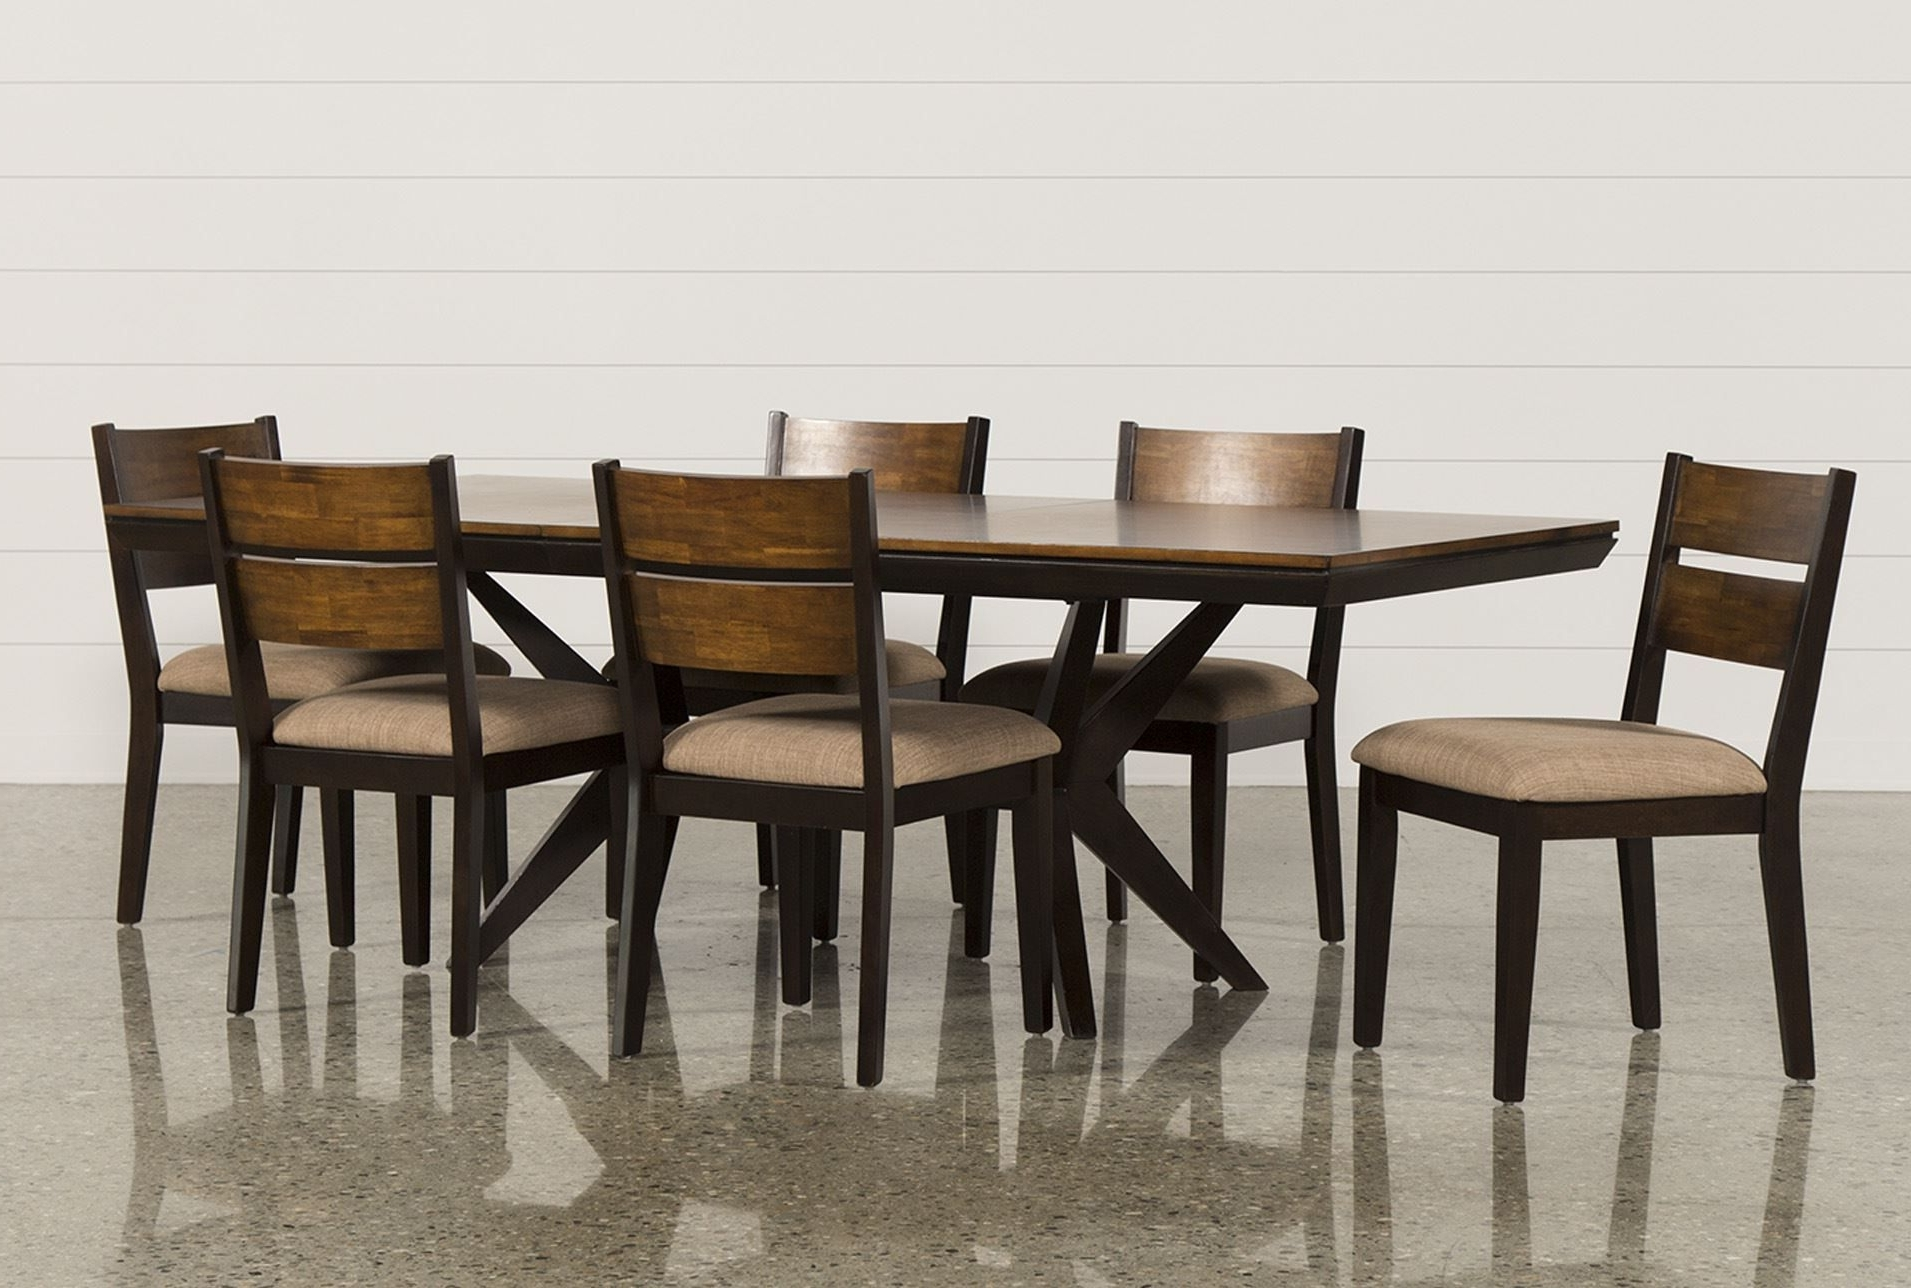 Spencer 7 Piece Rectangle Dining Set W/wood Chairs, Brown (View 14 of 25)